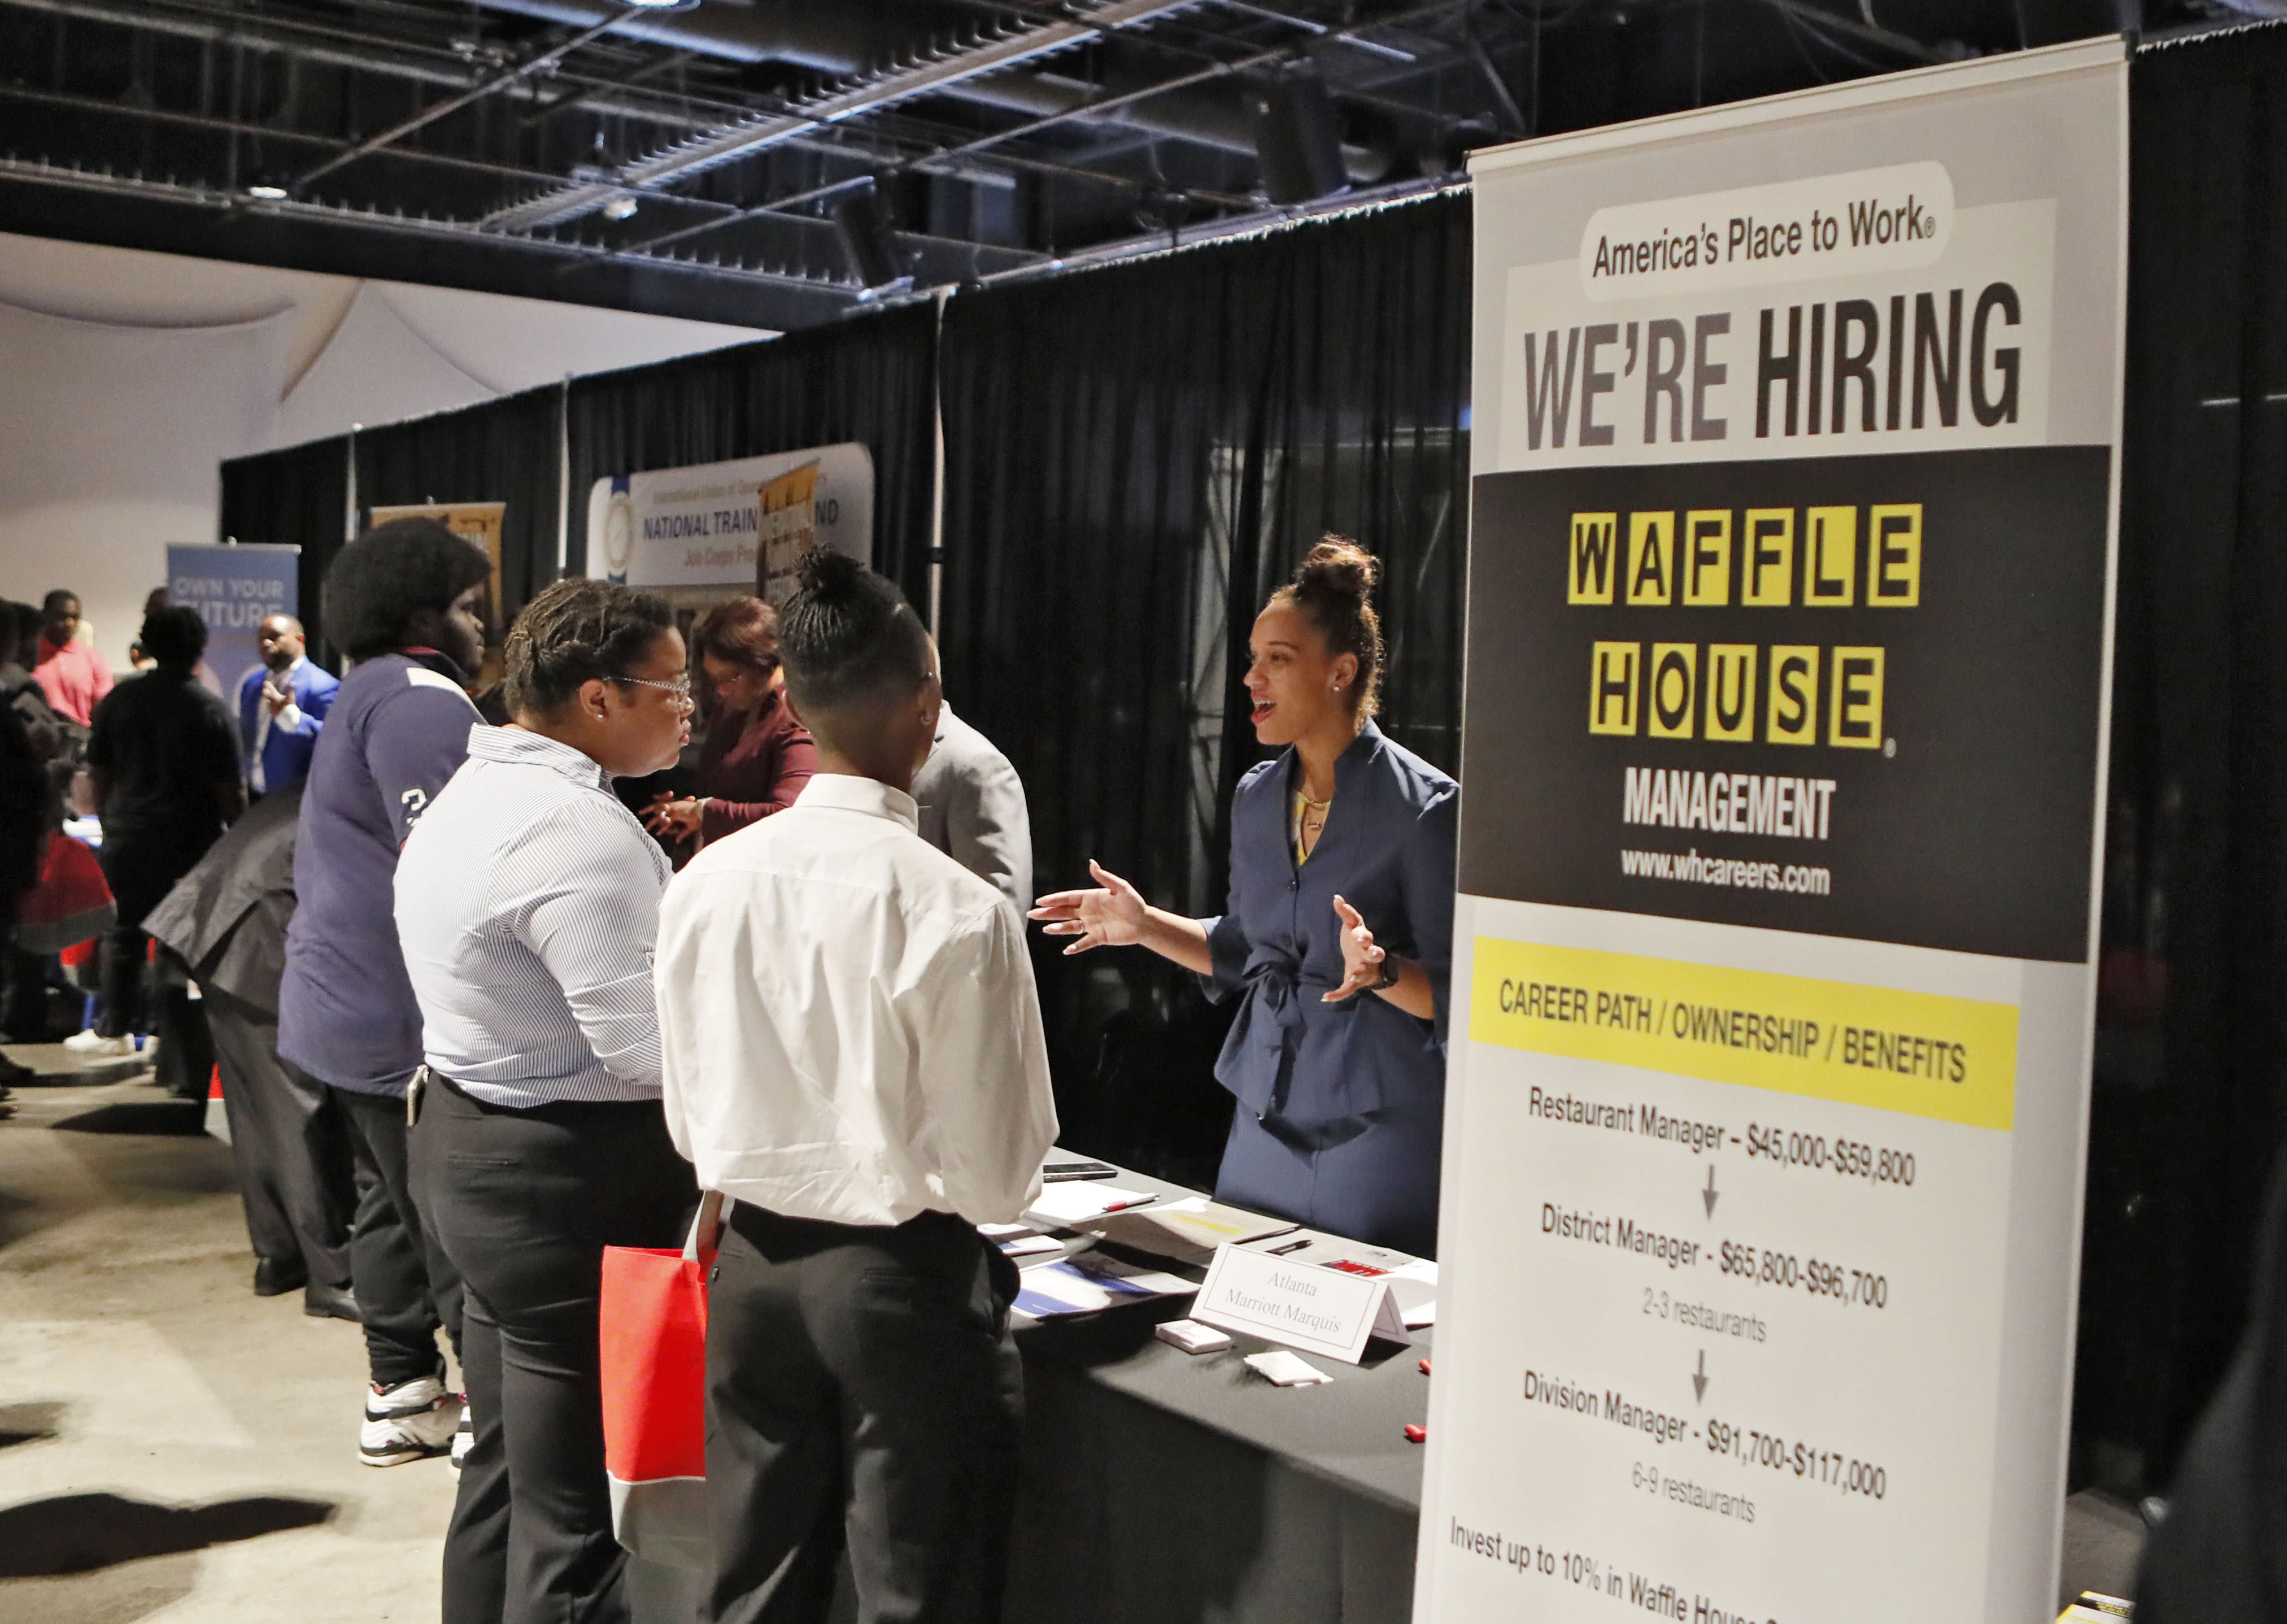 FILE - In this Aug. 14, 2019, file photo a Waffle House representative speaks to potential applicants during a job and resource fair in Atlanta. On Friday, Sept. 6, the U.S. government issues the August jobs report. (Bob Andres/Atlanta Journal-Constitution via AP, File)